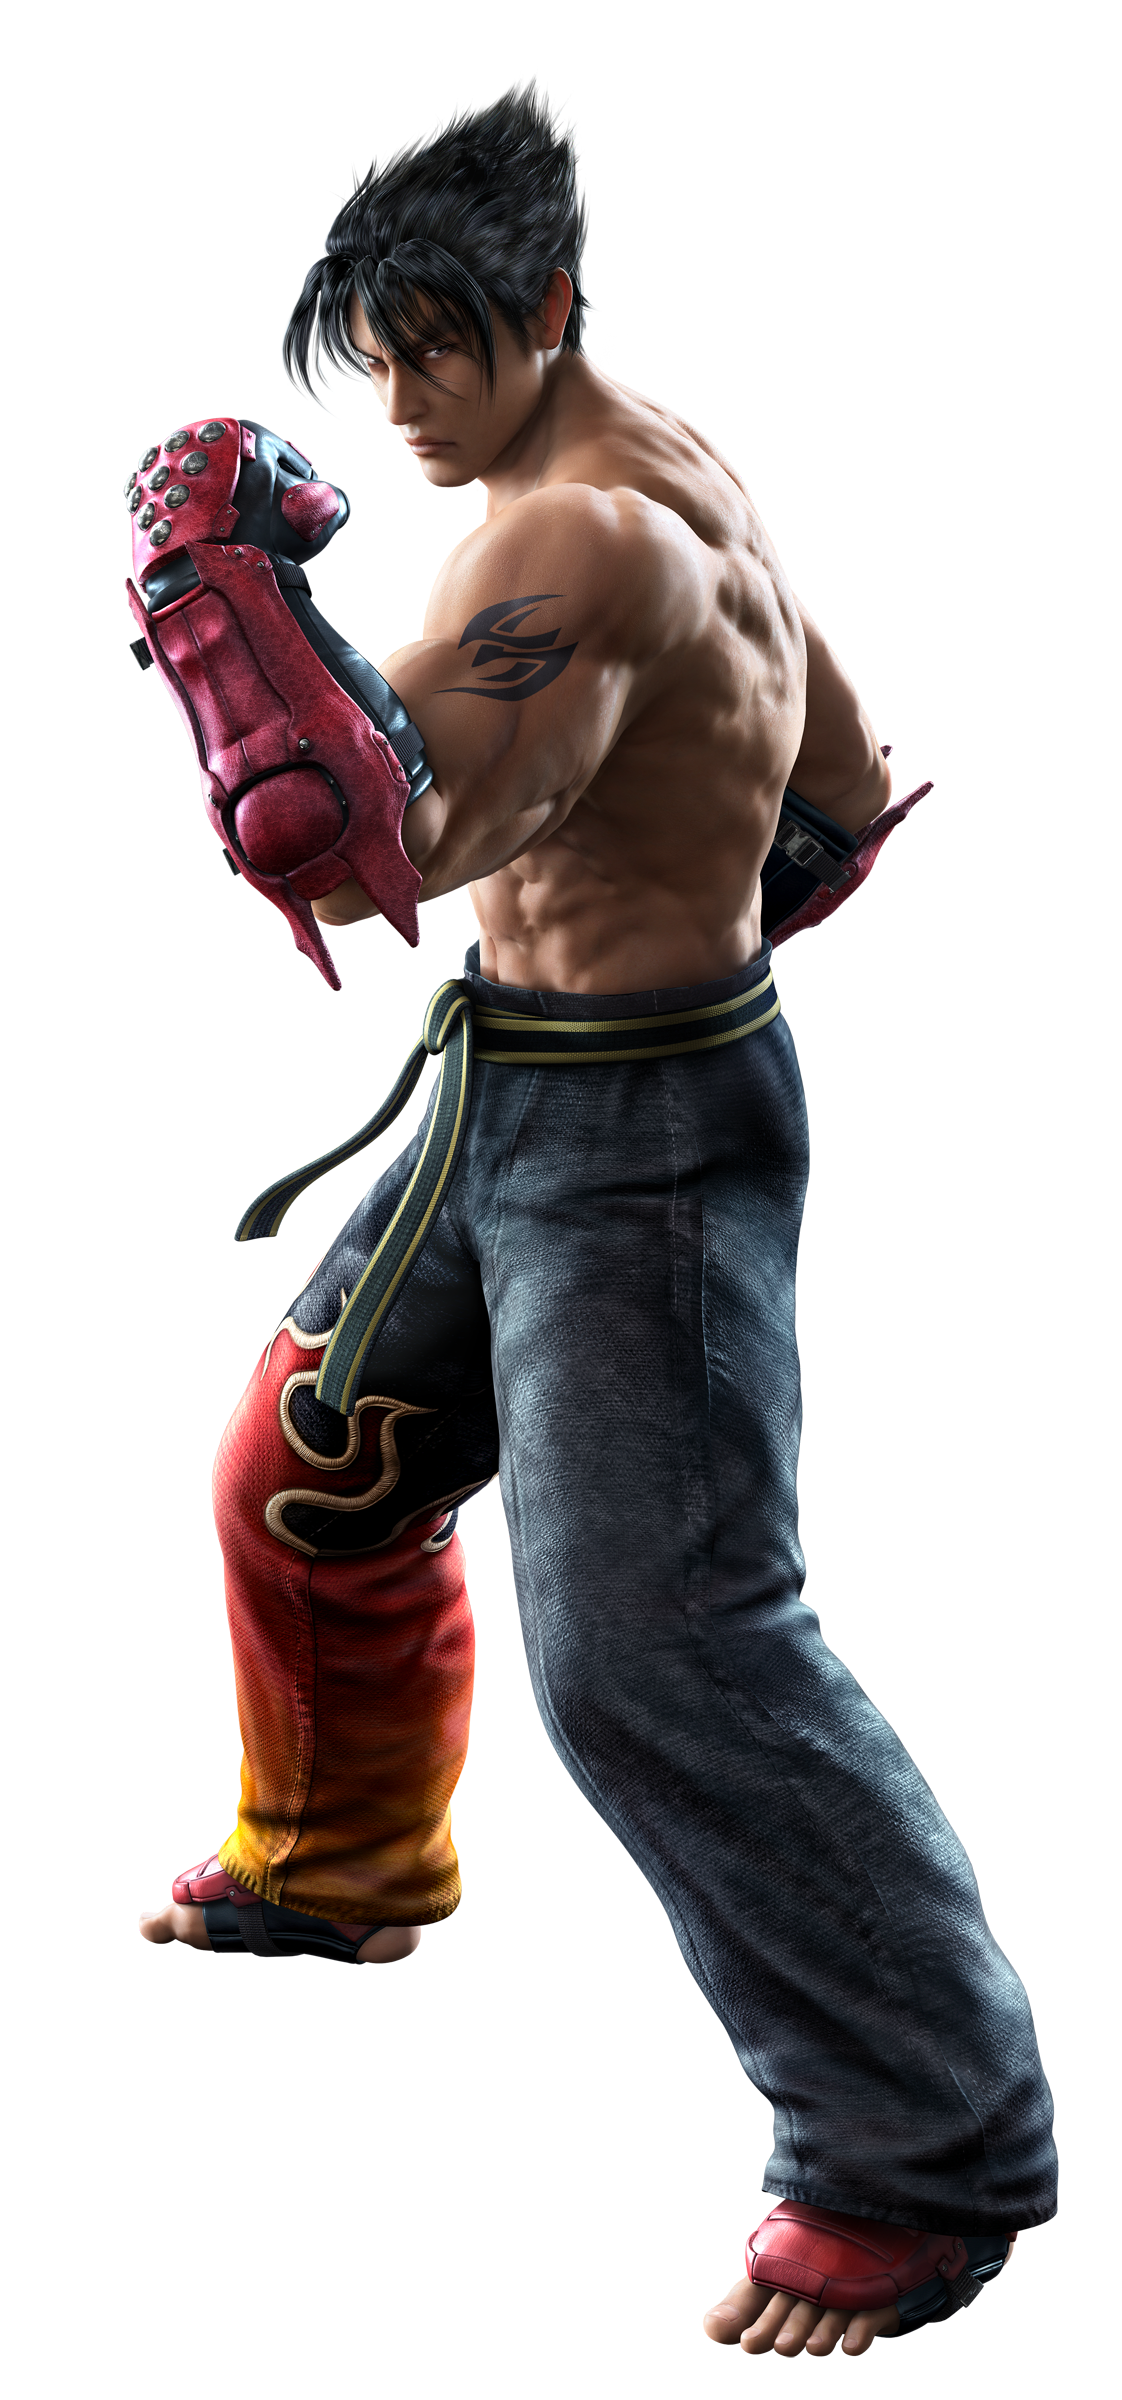 Full resolution PlusPng.com  - Tekken PNG